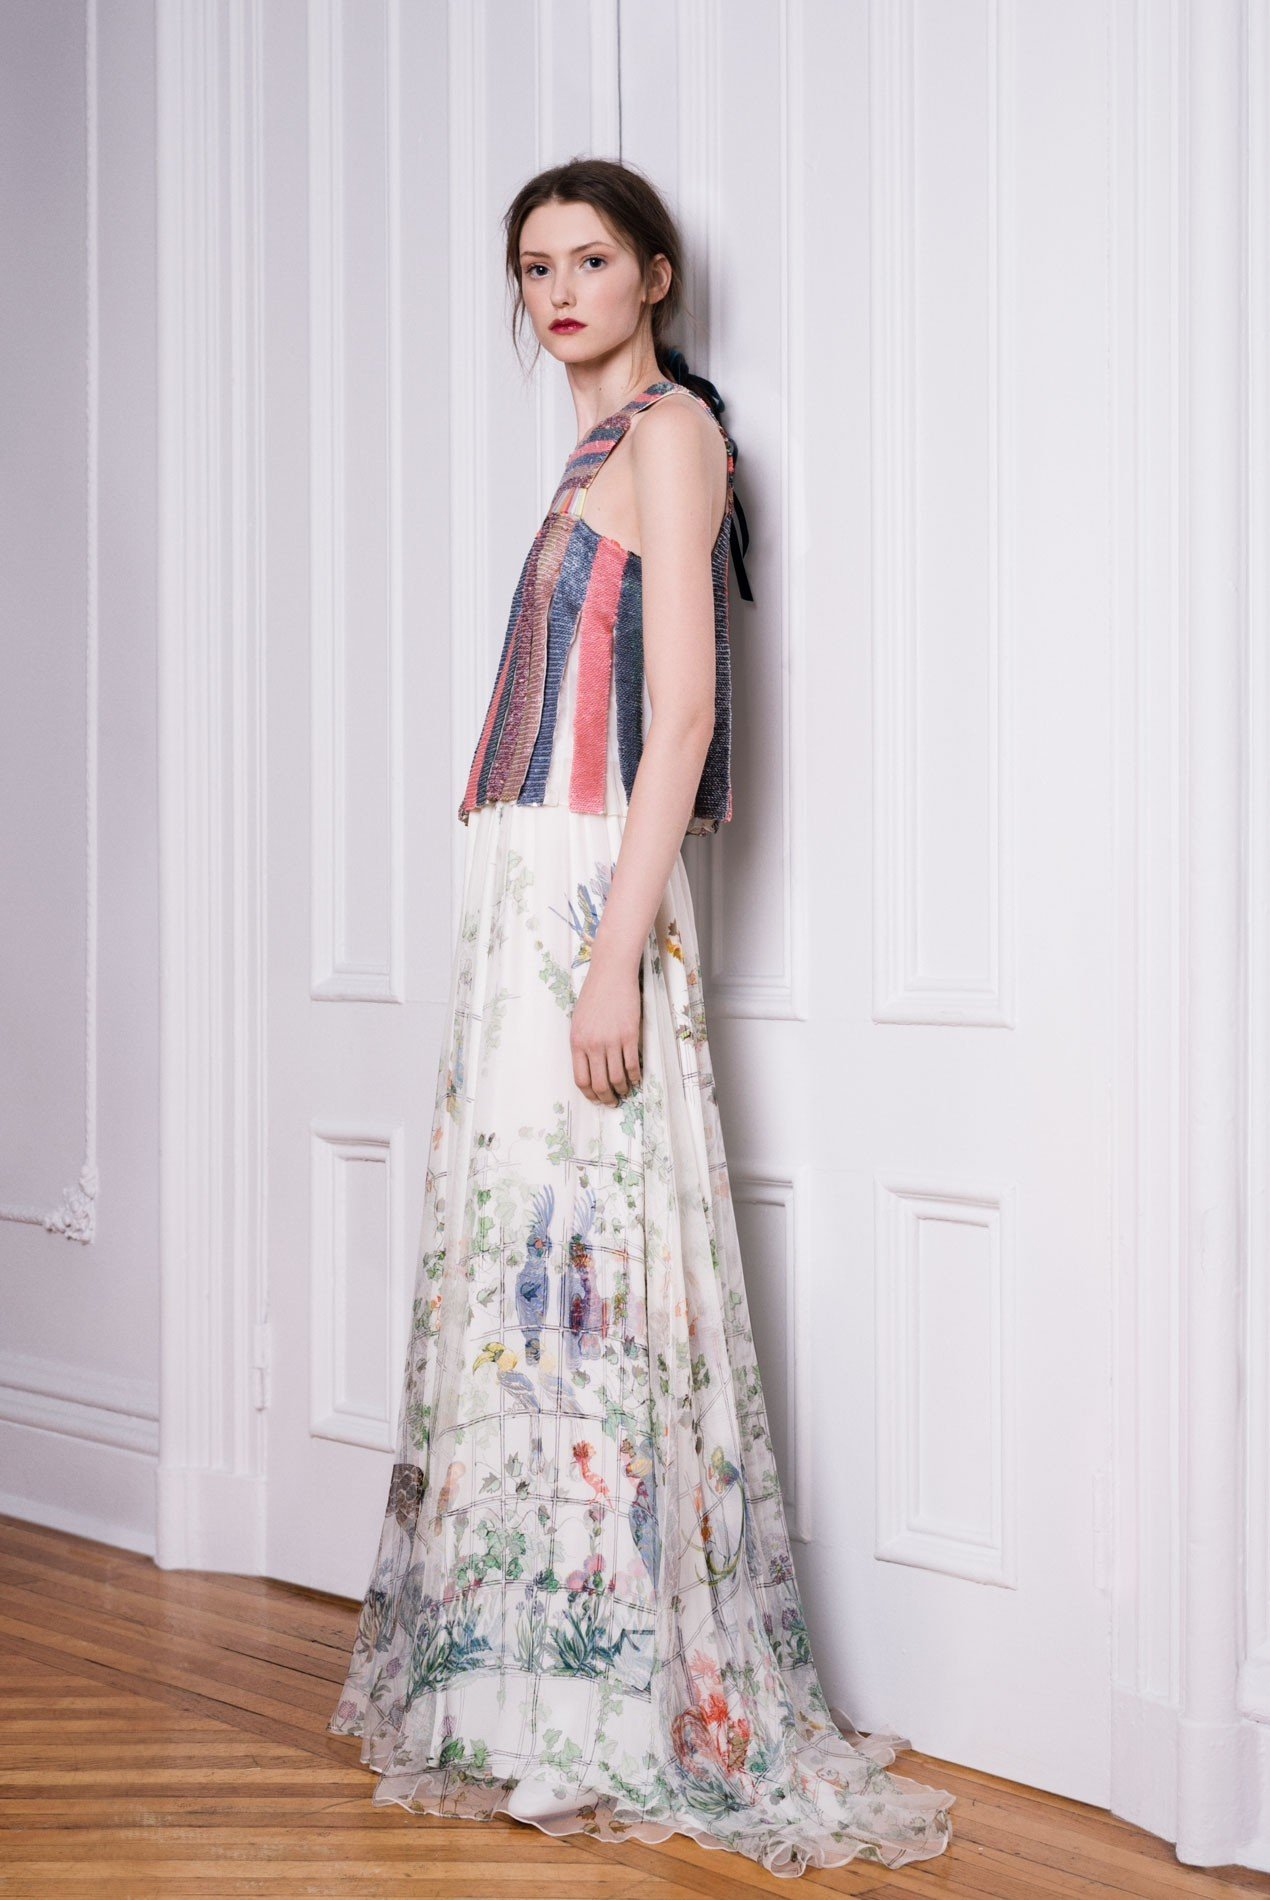 Top in sequin stripes over aviary print chiffon maxi skirt